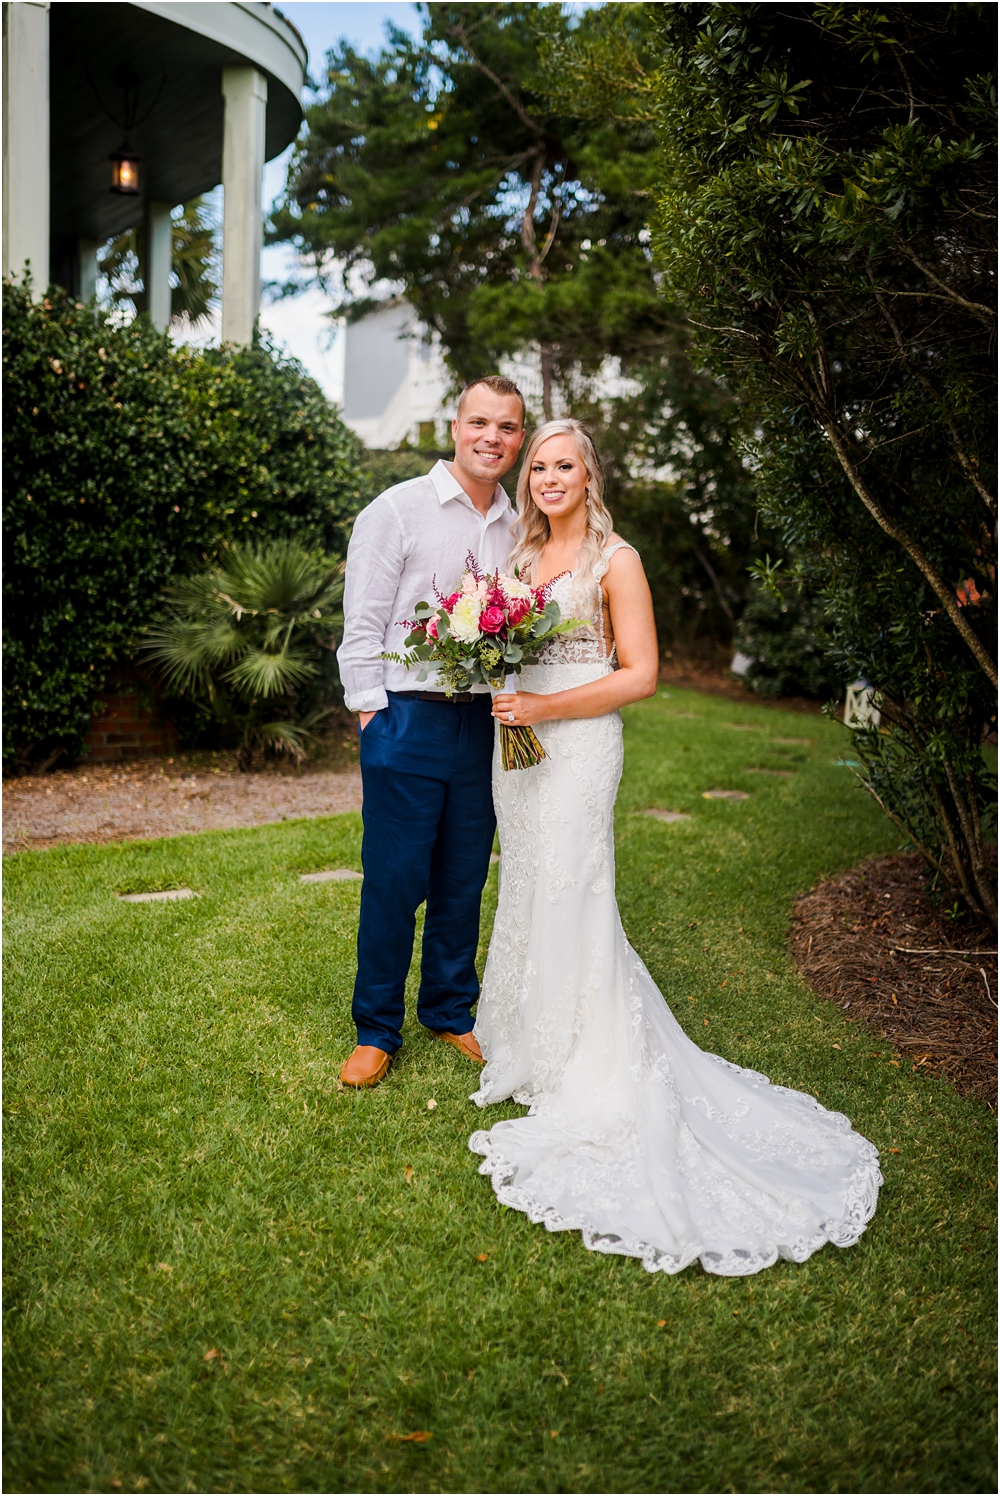 mcglothlin-wedding-kiersten-stevenson-photography-30a-panama-city-beach-dothan-tallahassee-(62-of-145).jpg